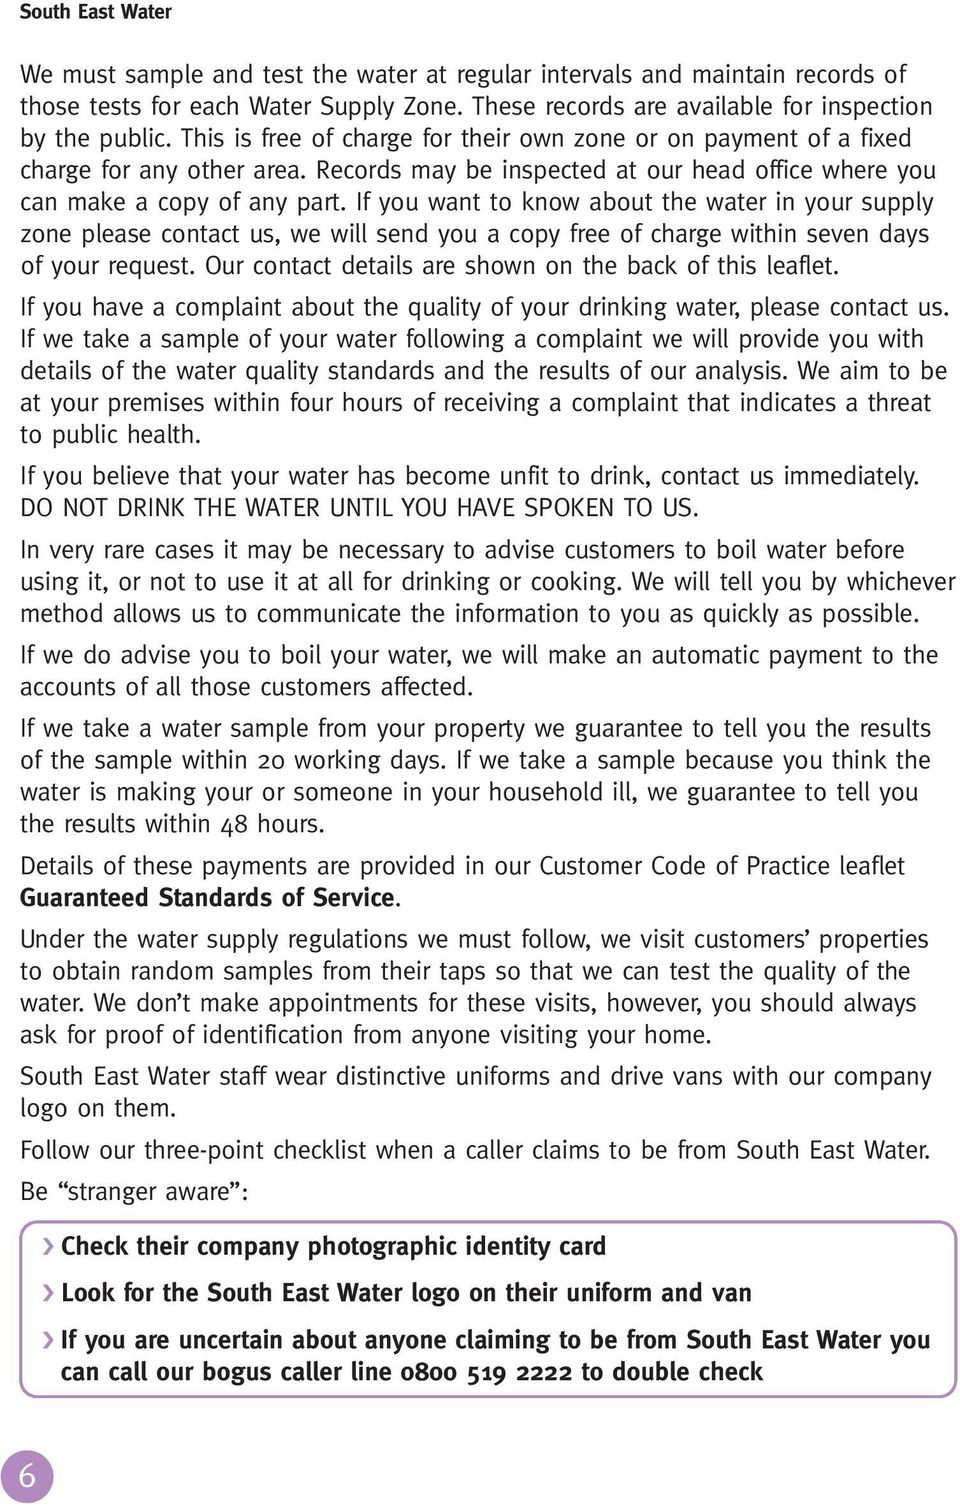 If you want to know about the water in your supply zone please contact us, we will send you a copy free of charge within seven days of your request.